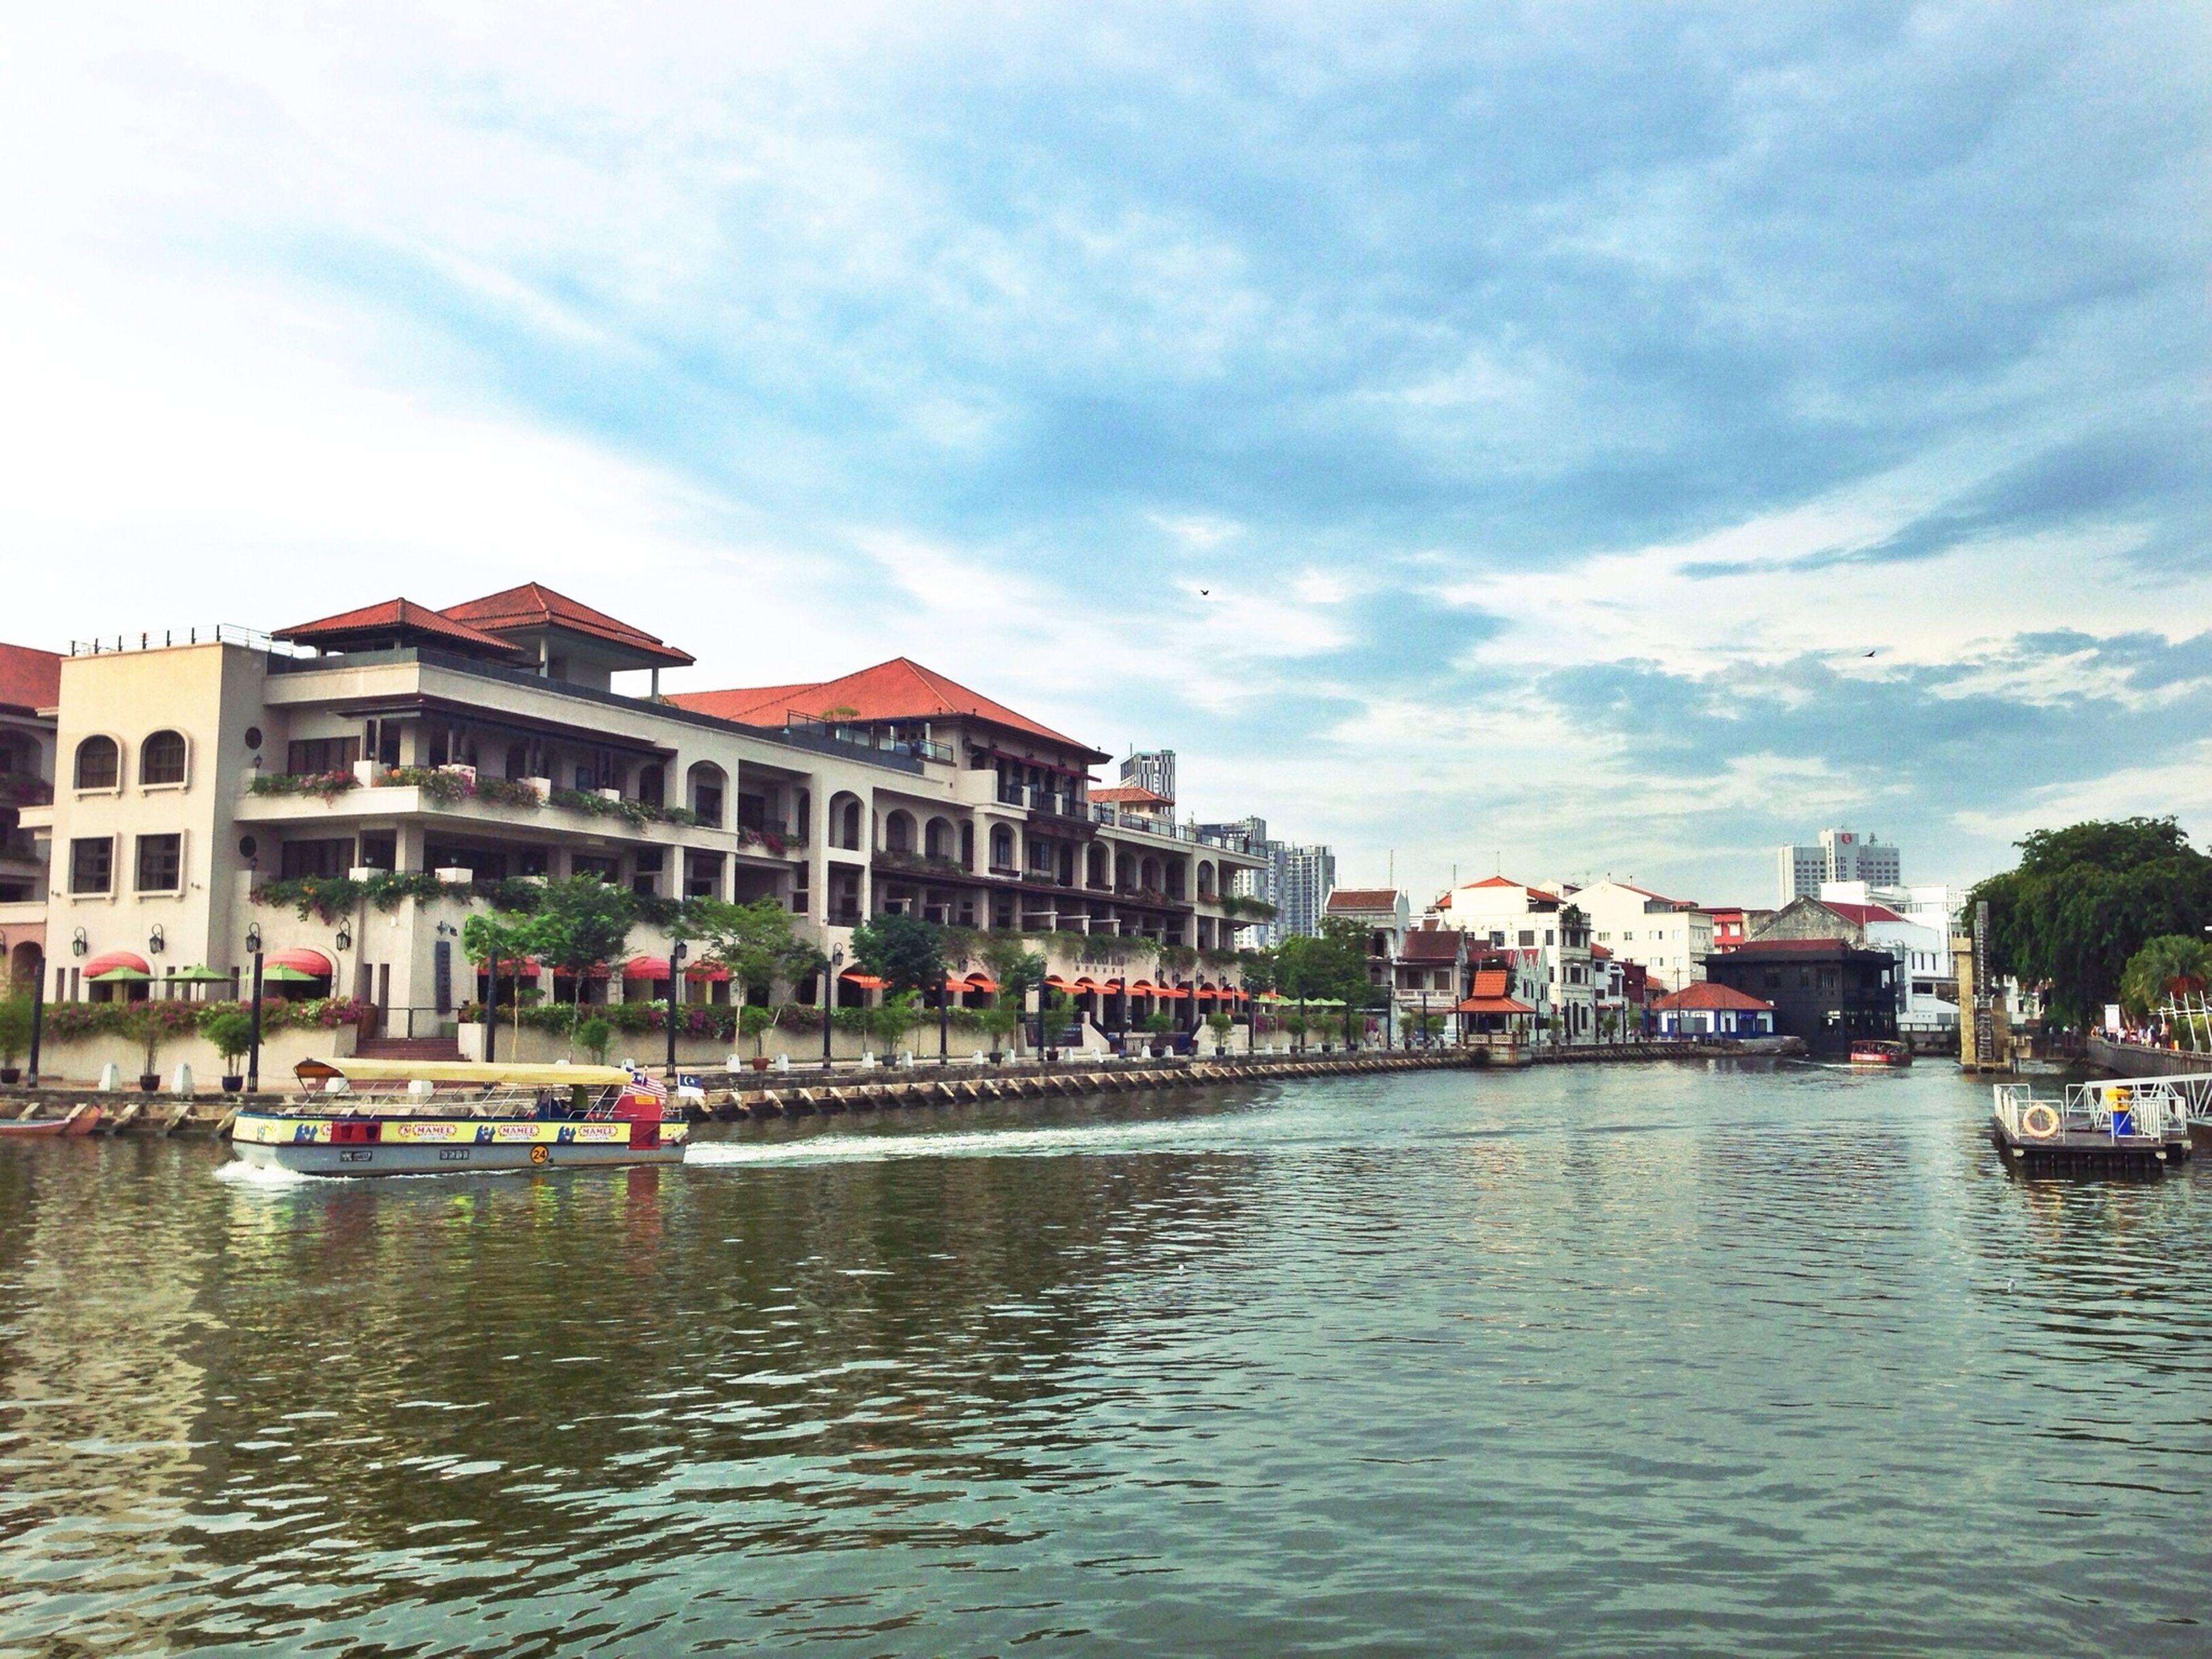 building exterior, architecture, built structure, water, sky, waterfront, nautical vessel, transportation, mode of transport, boat, cloud - sky, moored, residential structure, city, residential building, canal, house, cloud, river, incidental people